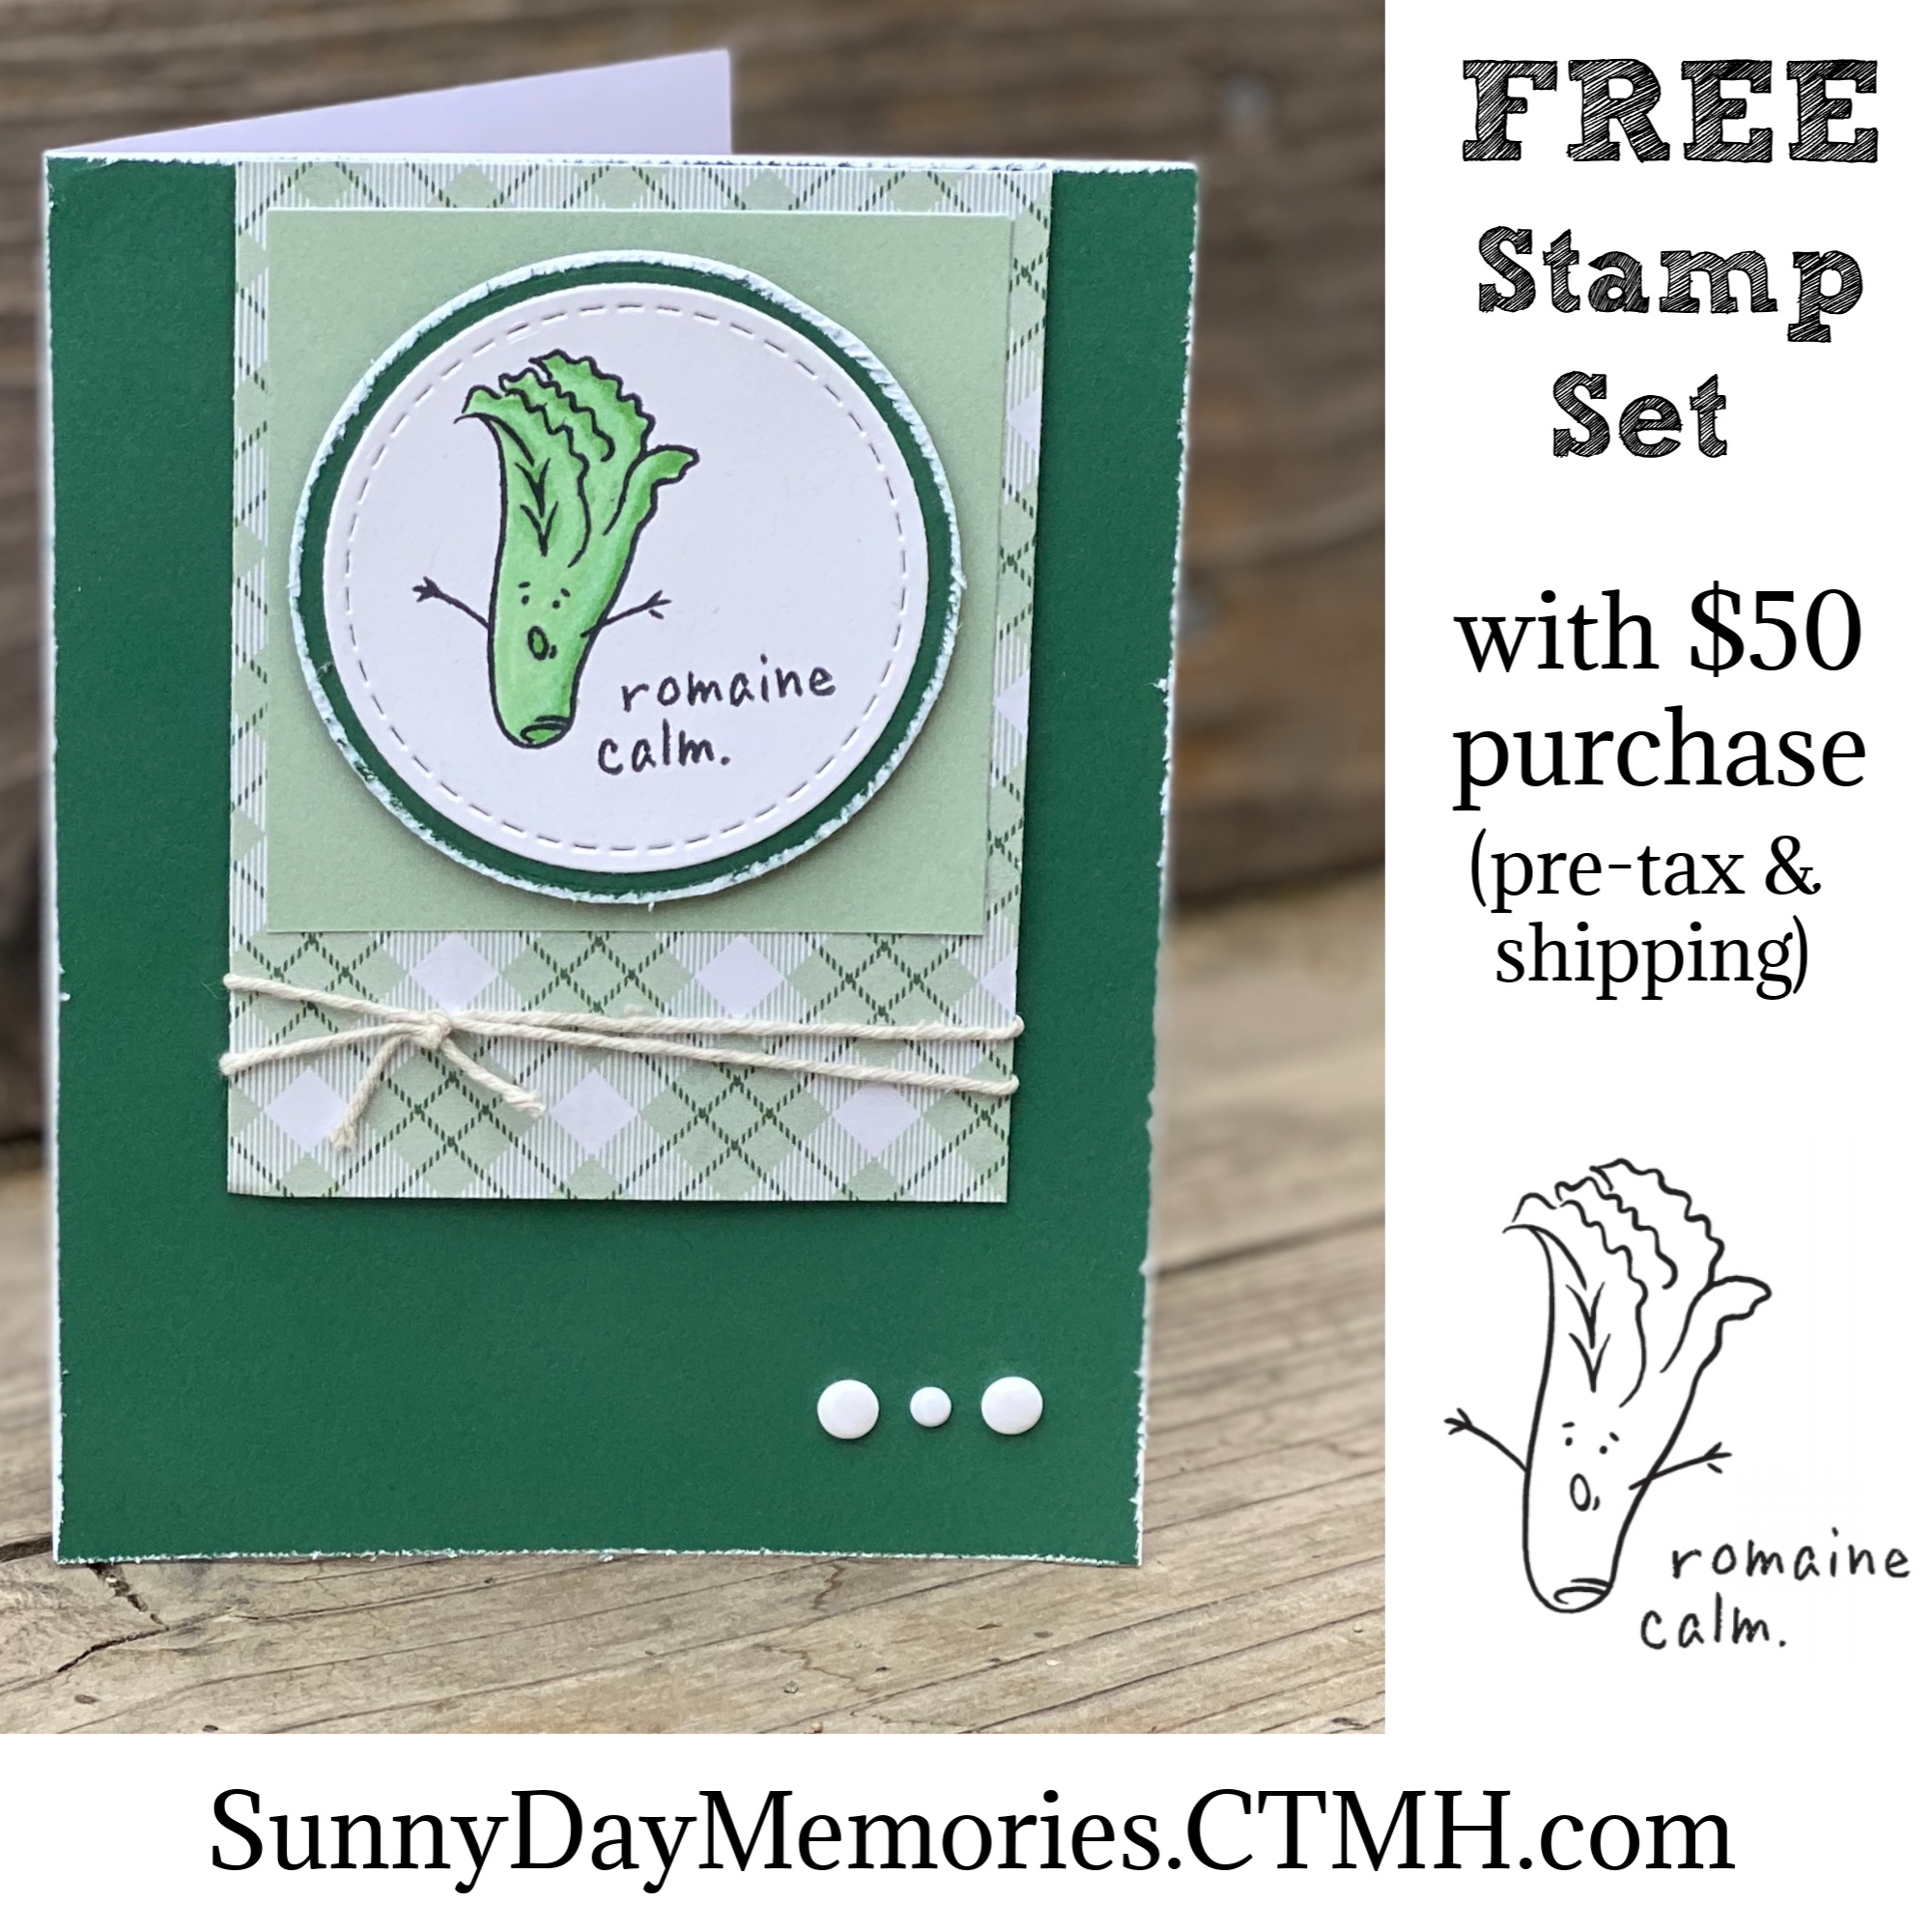 CTMH FREE Stamp Set Offer